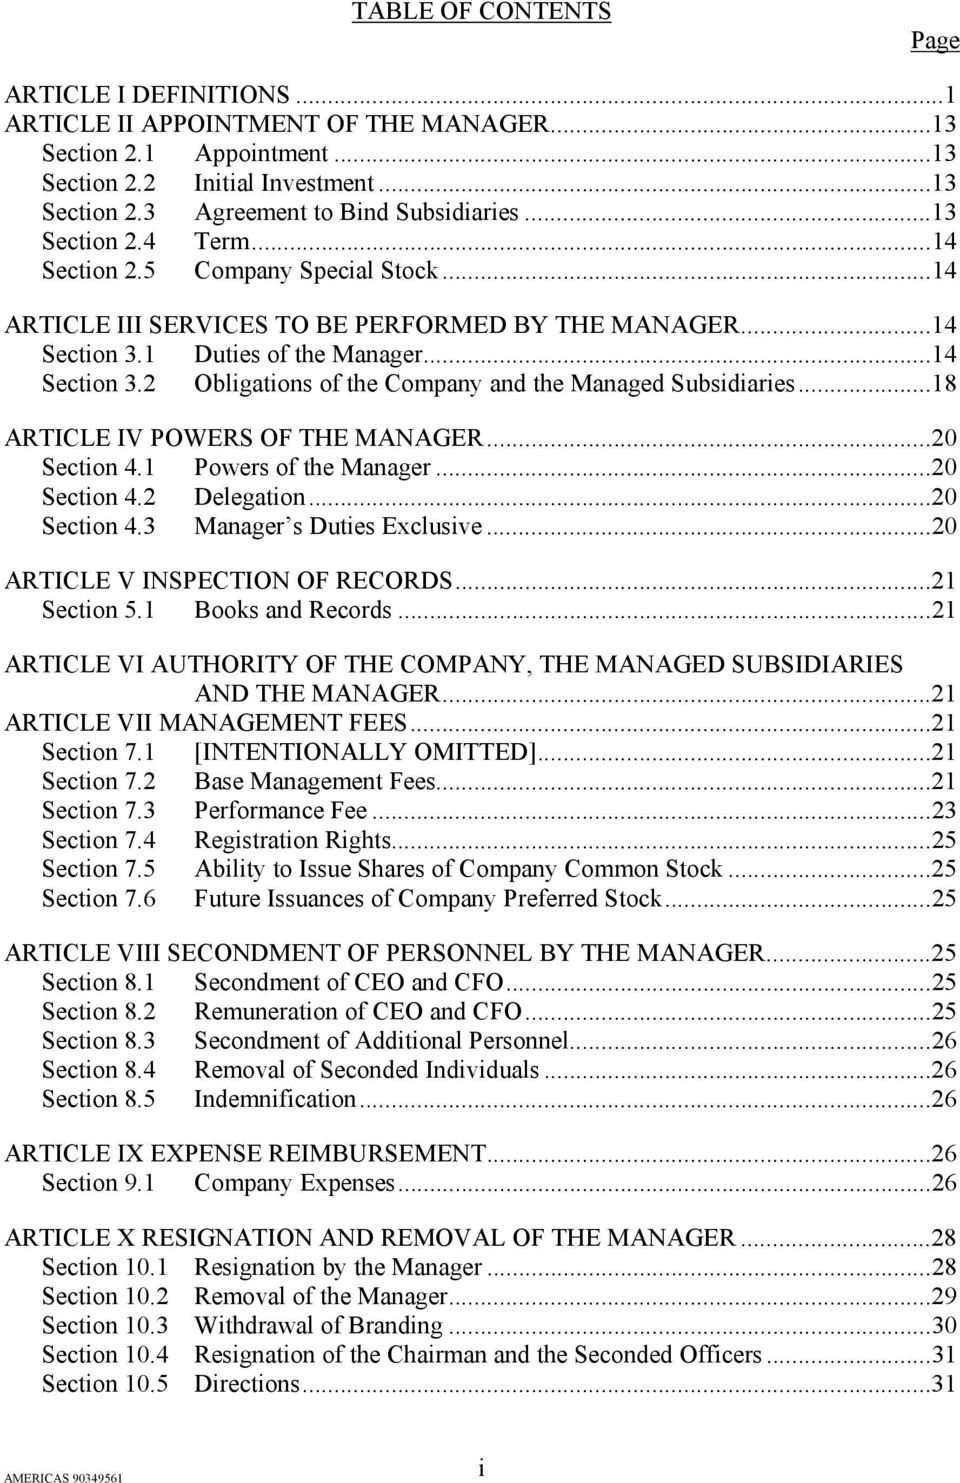 ..18 ARTICLE IV POWERS OF THE MANAGER...20 Section 4.1 Powers of the Manager...20 Section 4.2 Delegation...20 Section 4.3 Manager s Duties Exclusive...20 ARTICLE V INSPECTION OF RECORDS...21 Section 5.